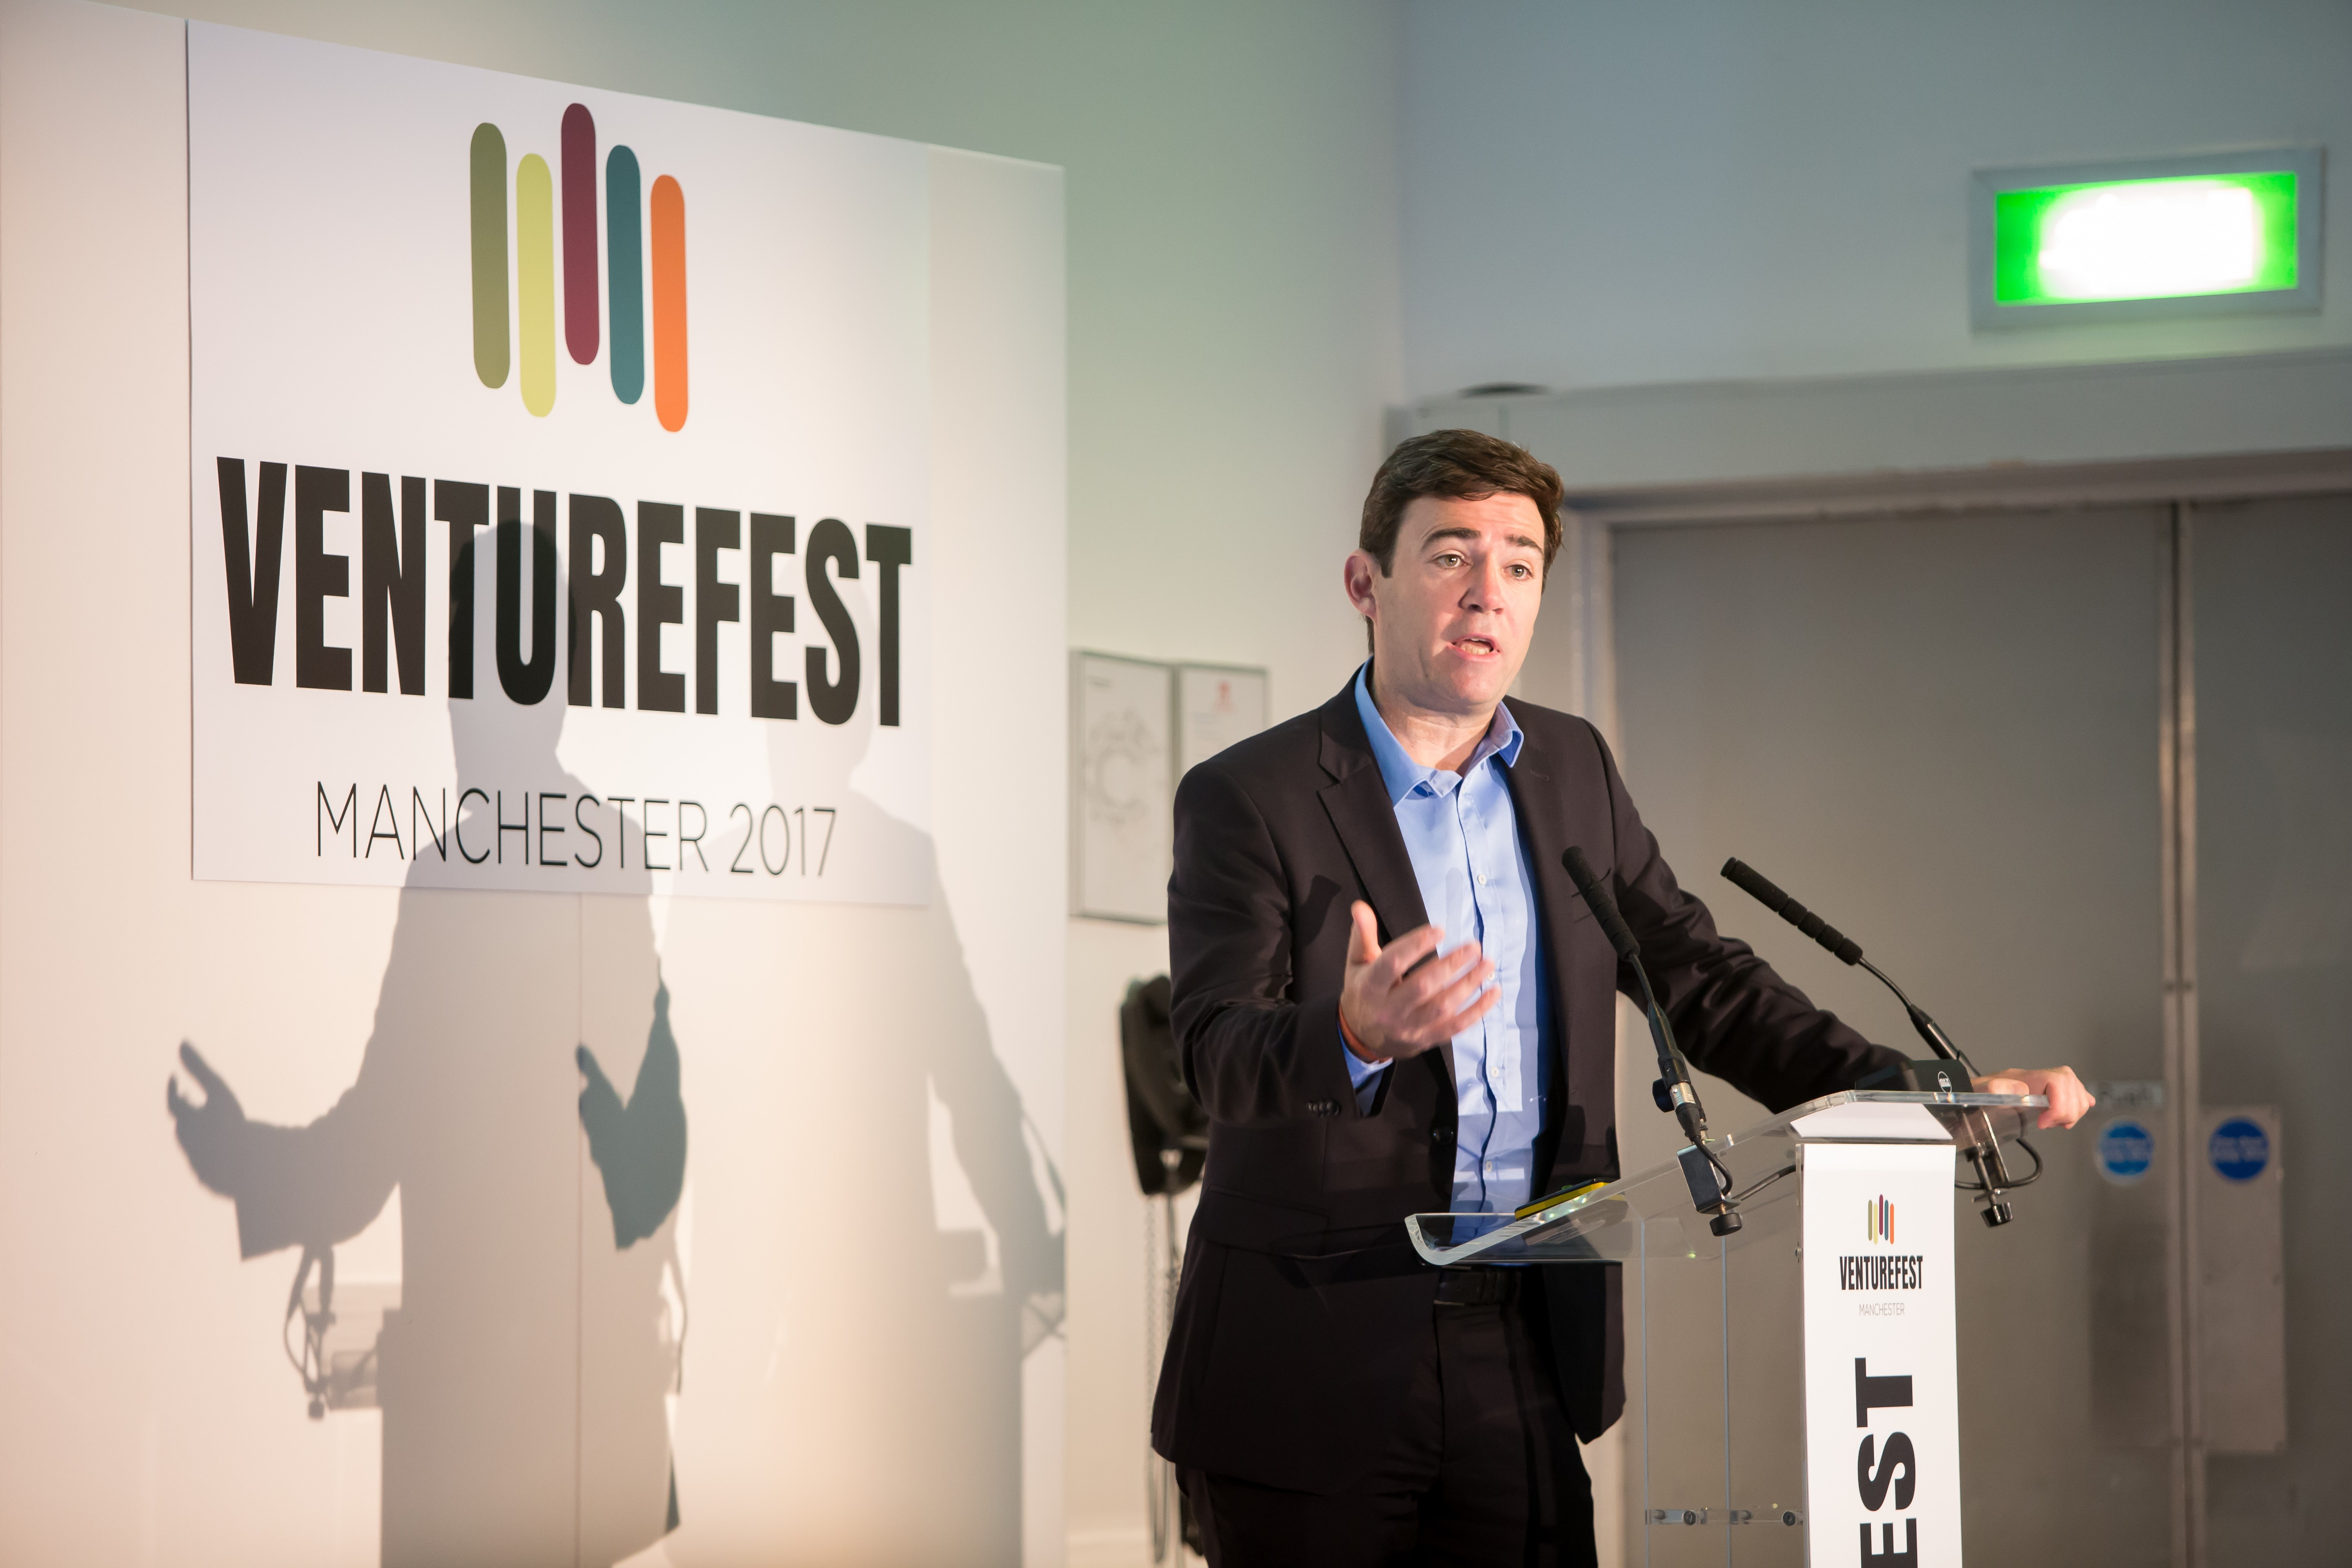 _HPA9217 - Andy Burnham.JPG